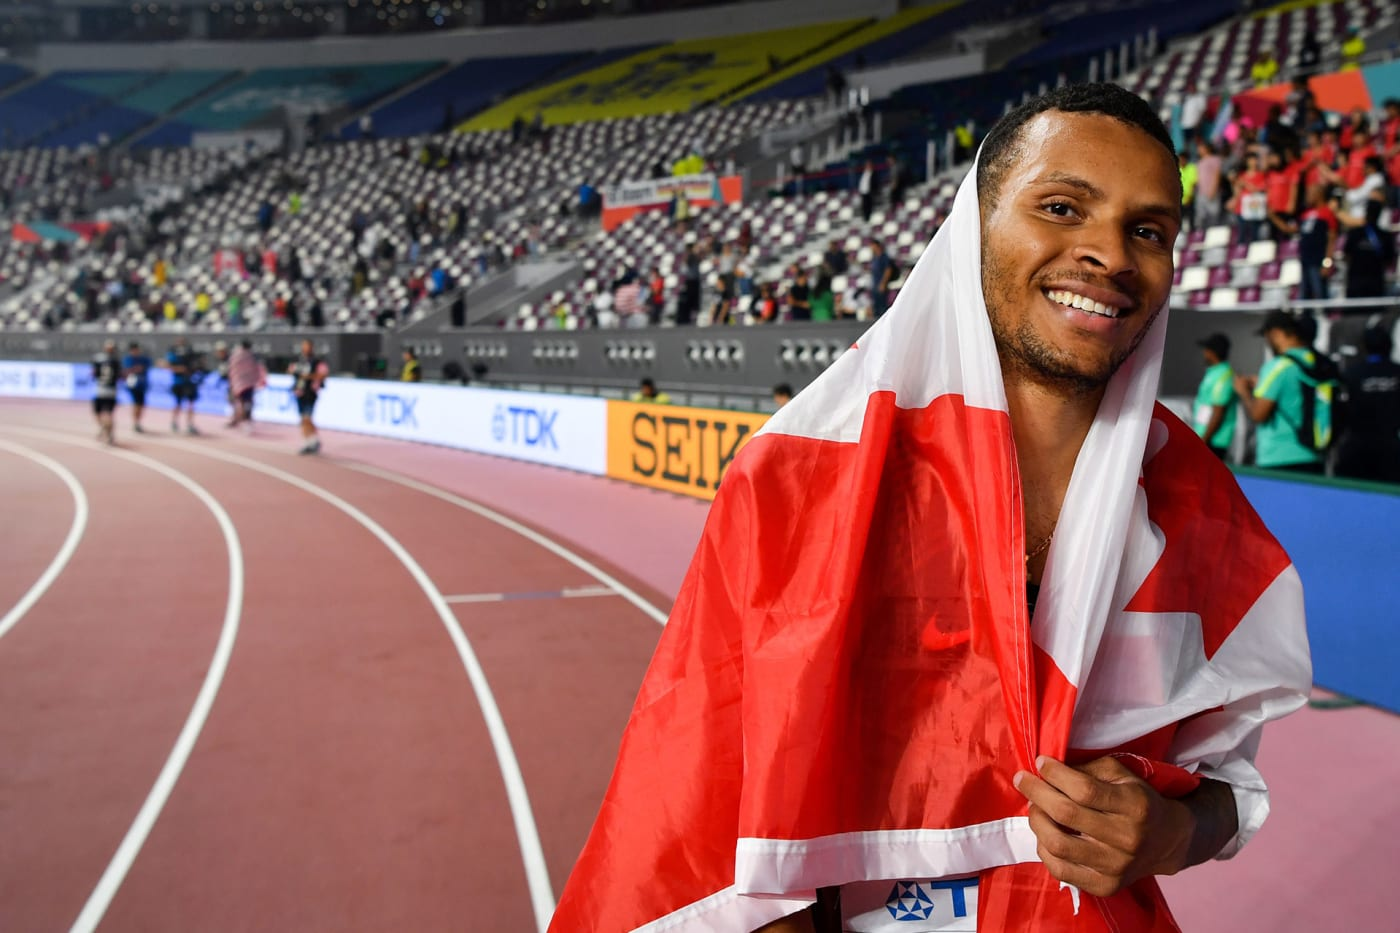 Canada's Andre De Grasse celebrates taking silver in the Men's 200m final at the 2019 IAAF Athletics World Championships at the Khalifa International stadium in Doha on October 1, 2019.